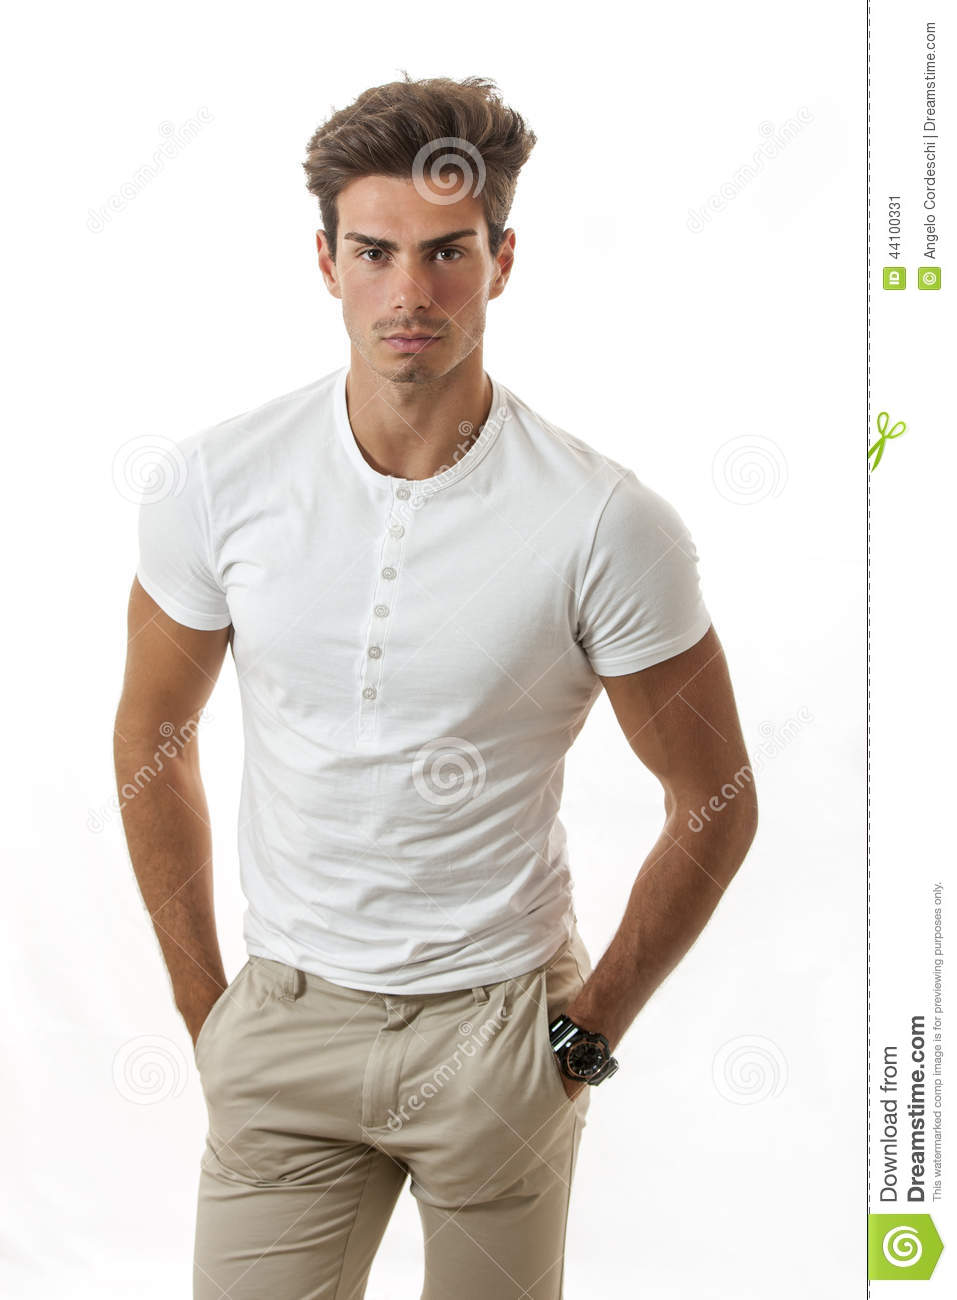 Manly Male Model Trendy Hairstyle Stock Photo - Image ...